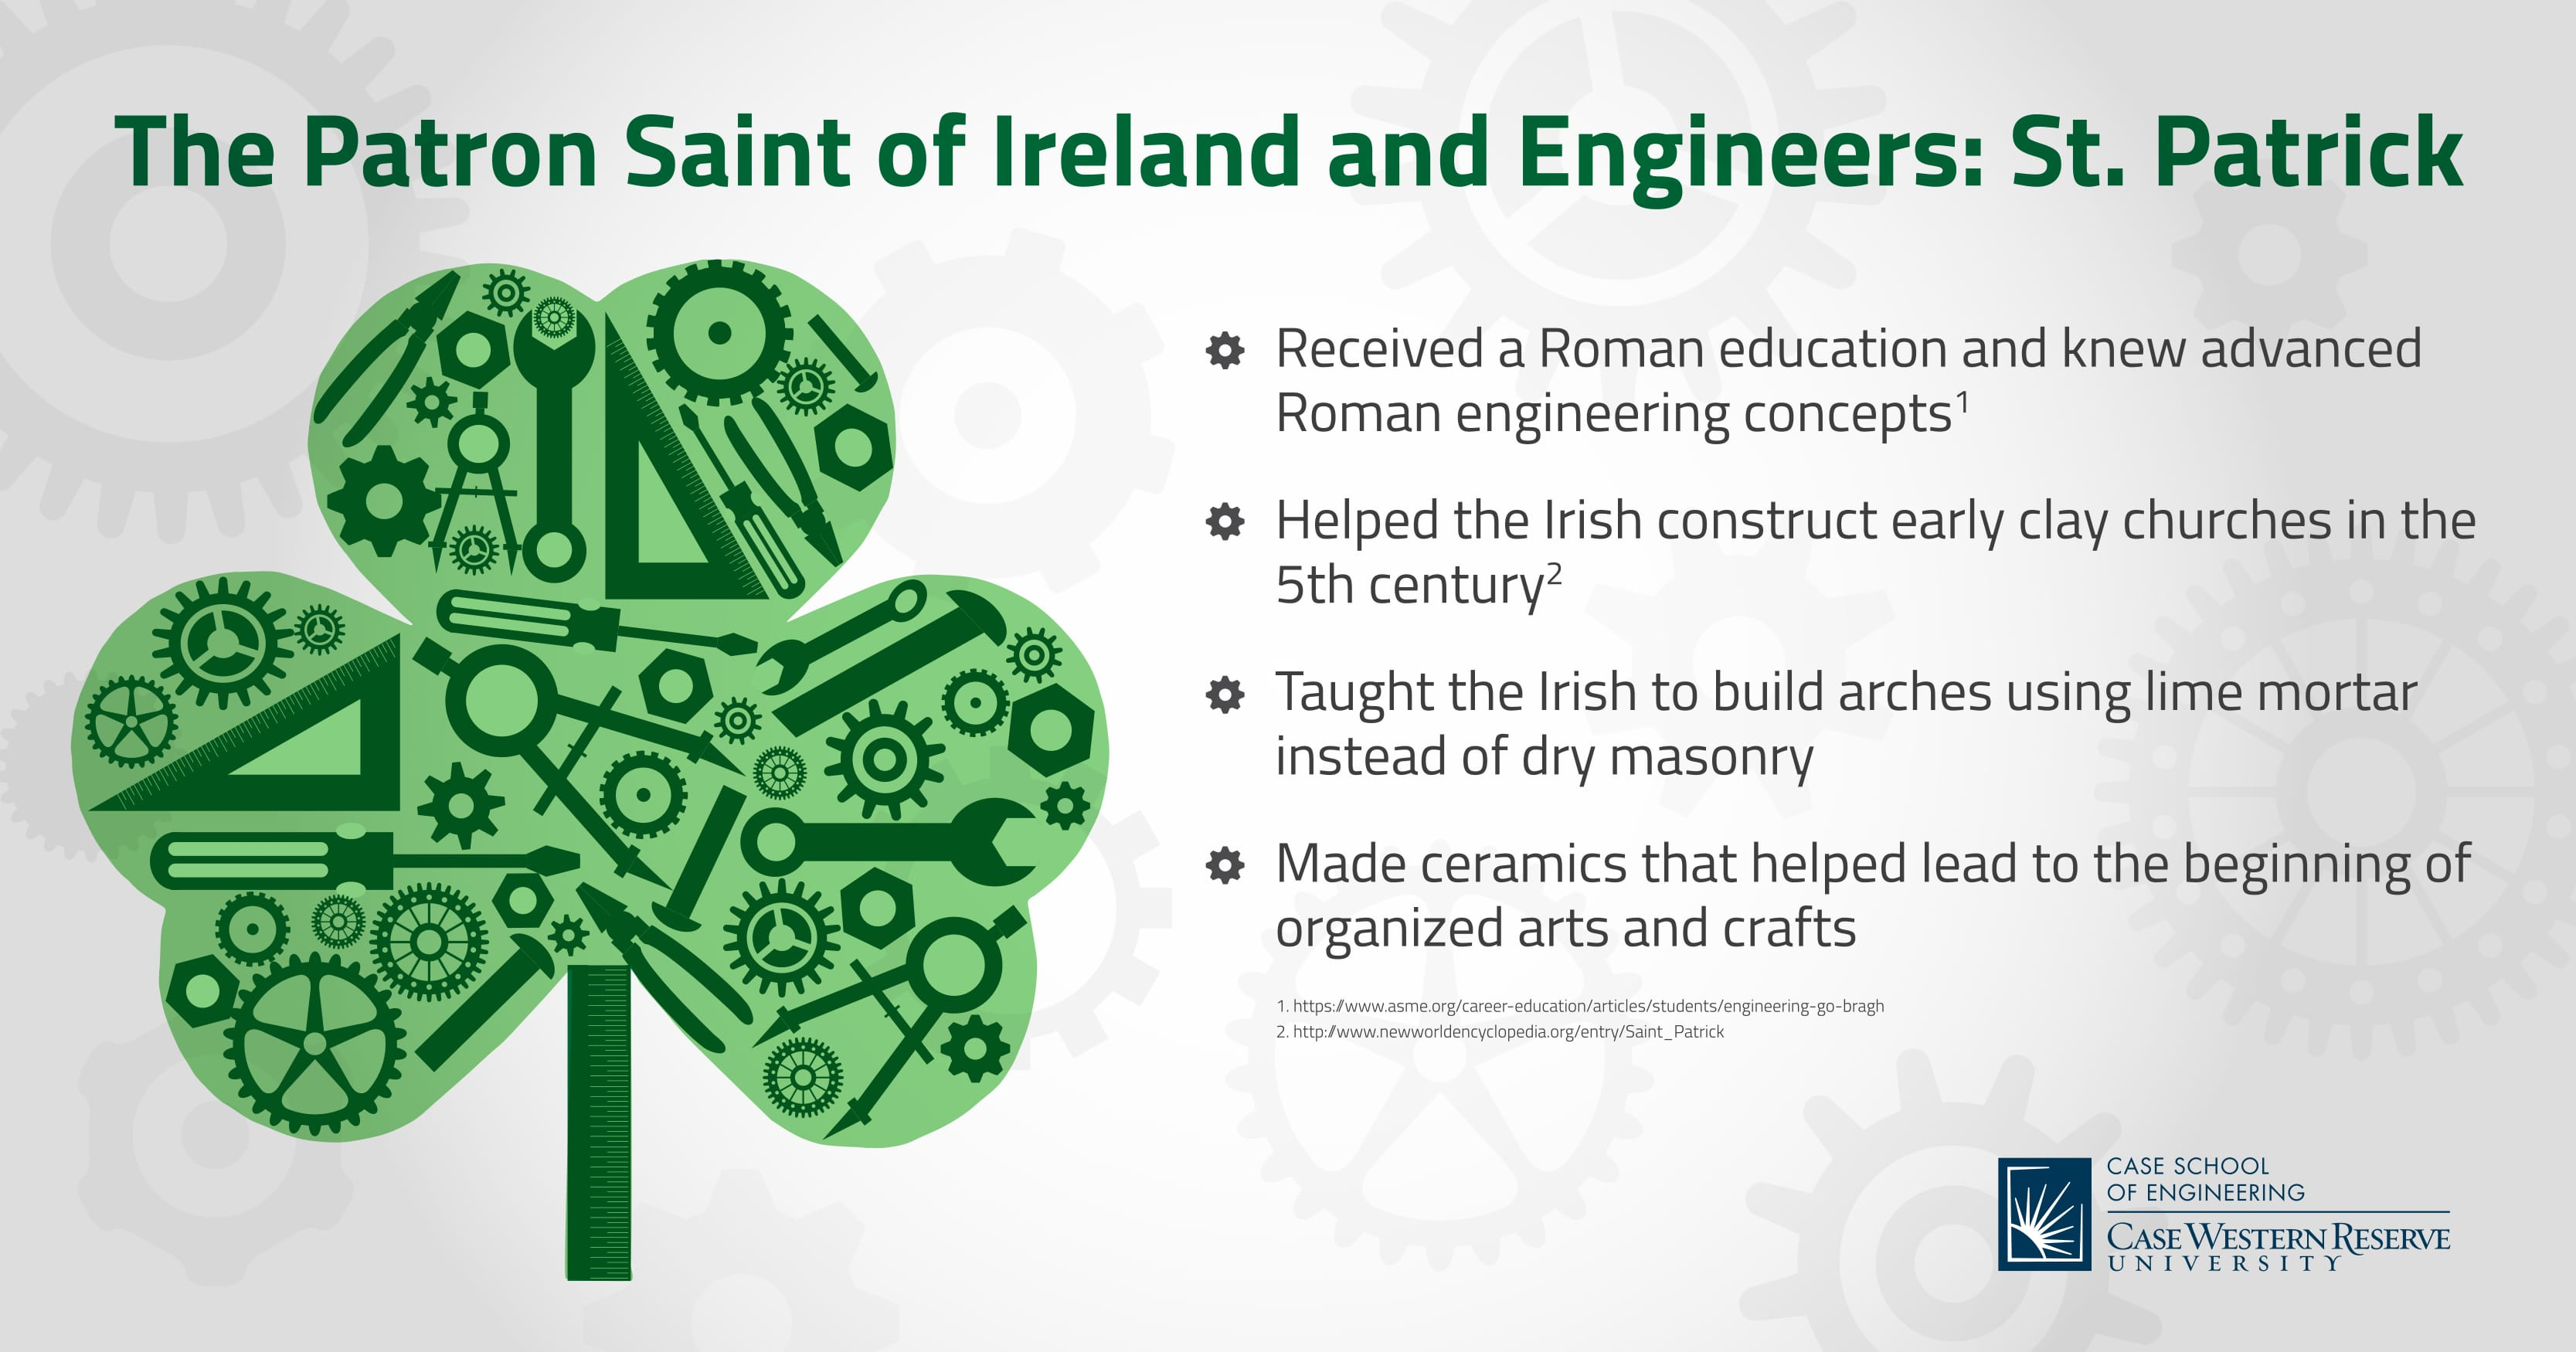 The Patron Saint of Ireland and Engineers: St. Patrick